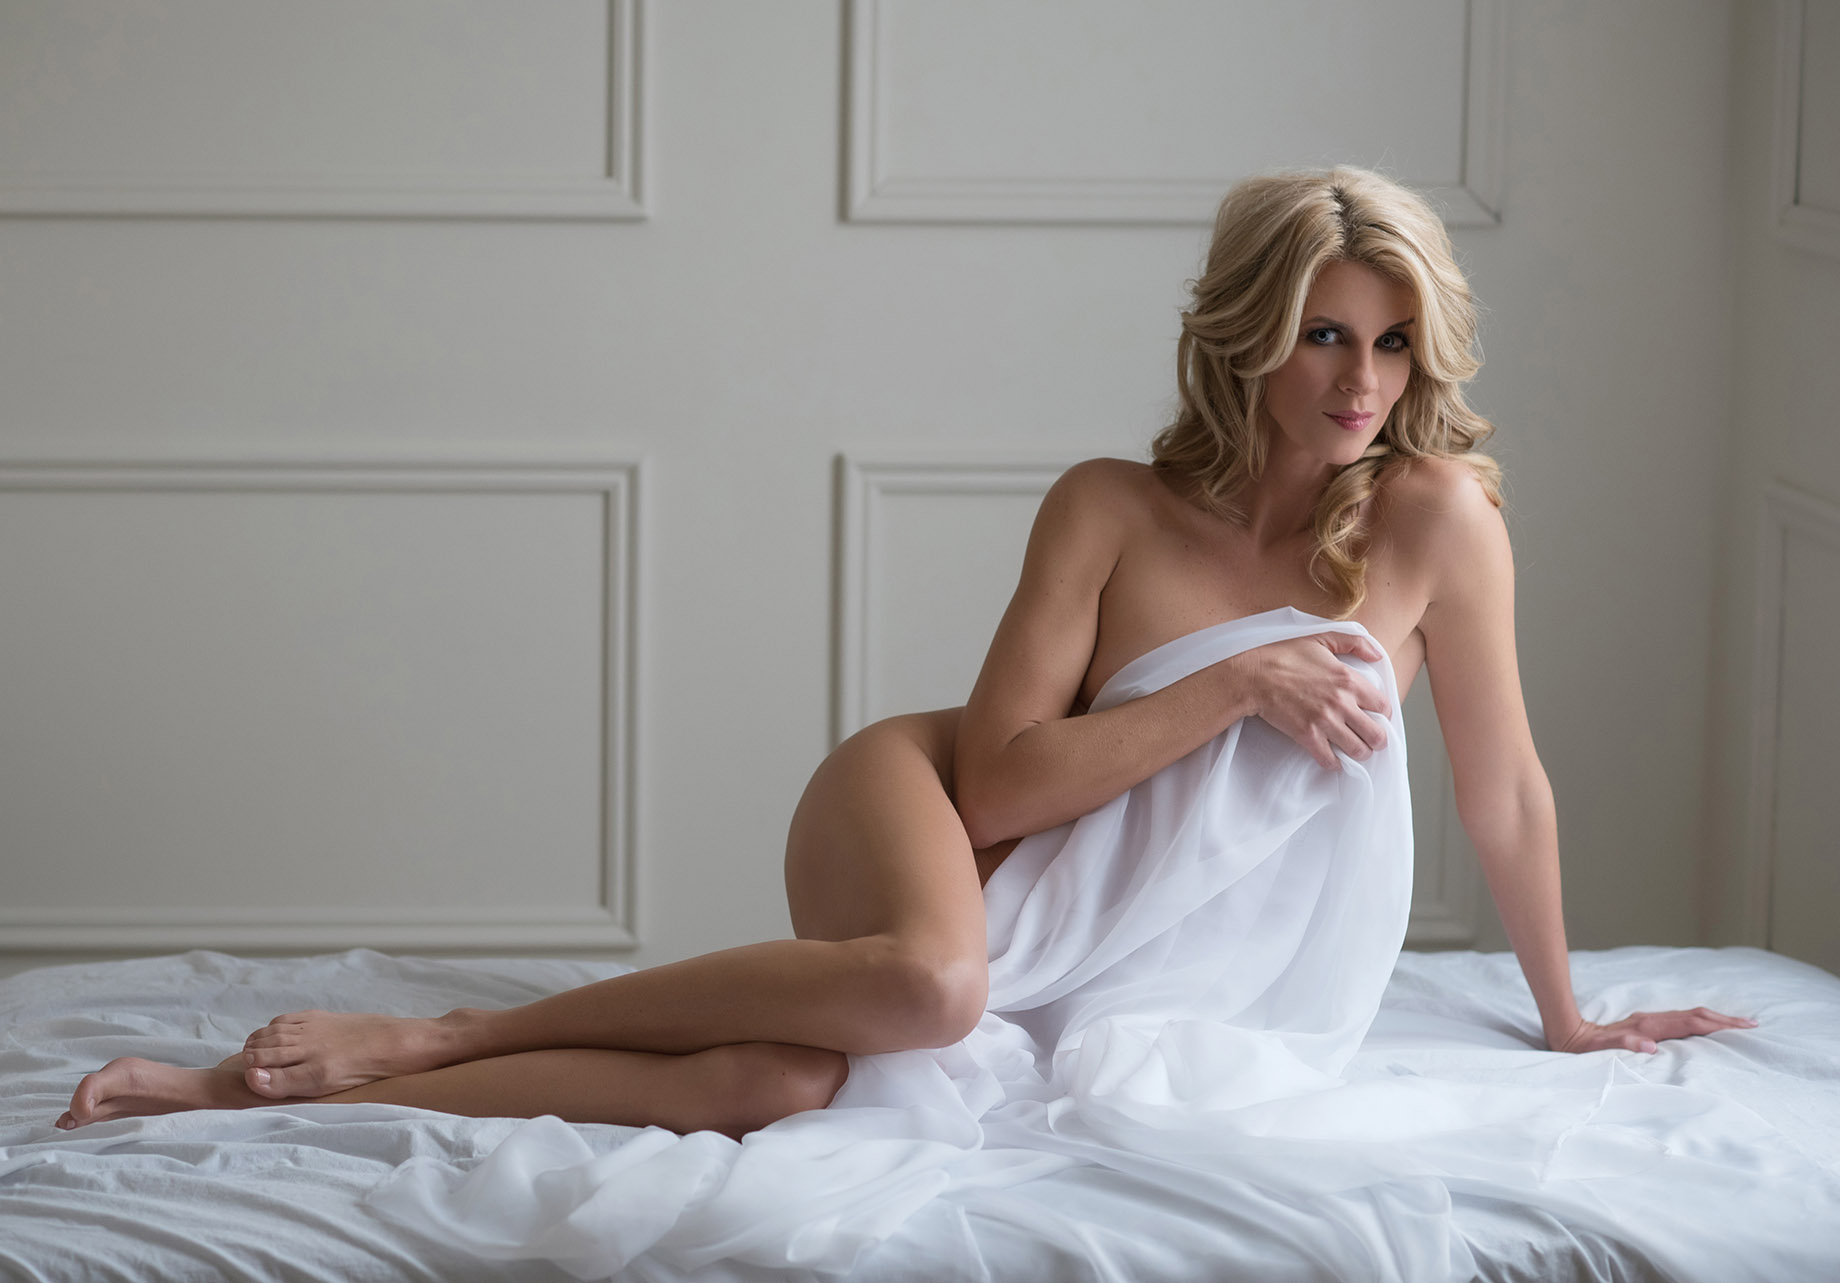 Boudoir photo poses that will make her look drop